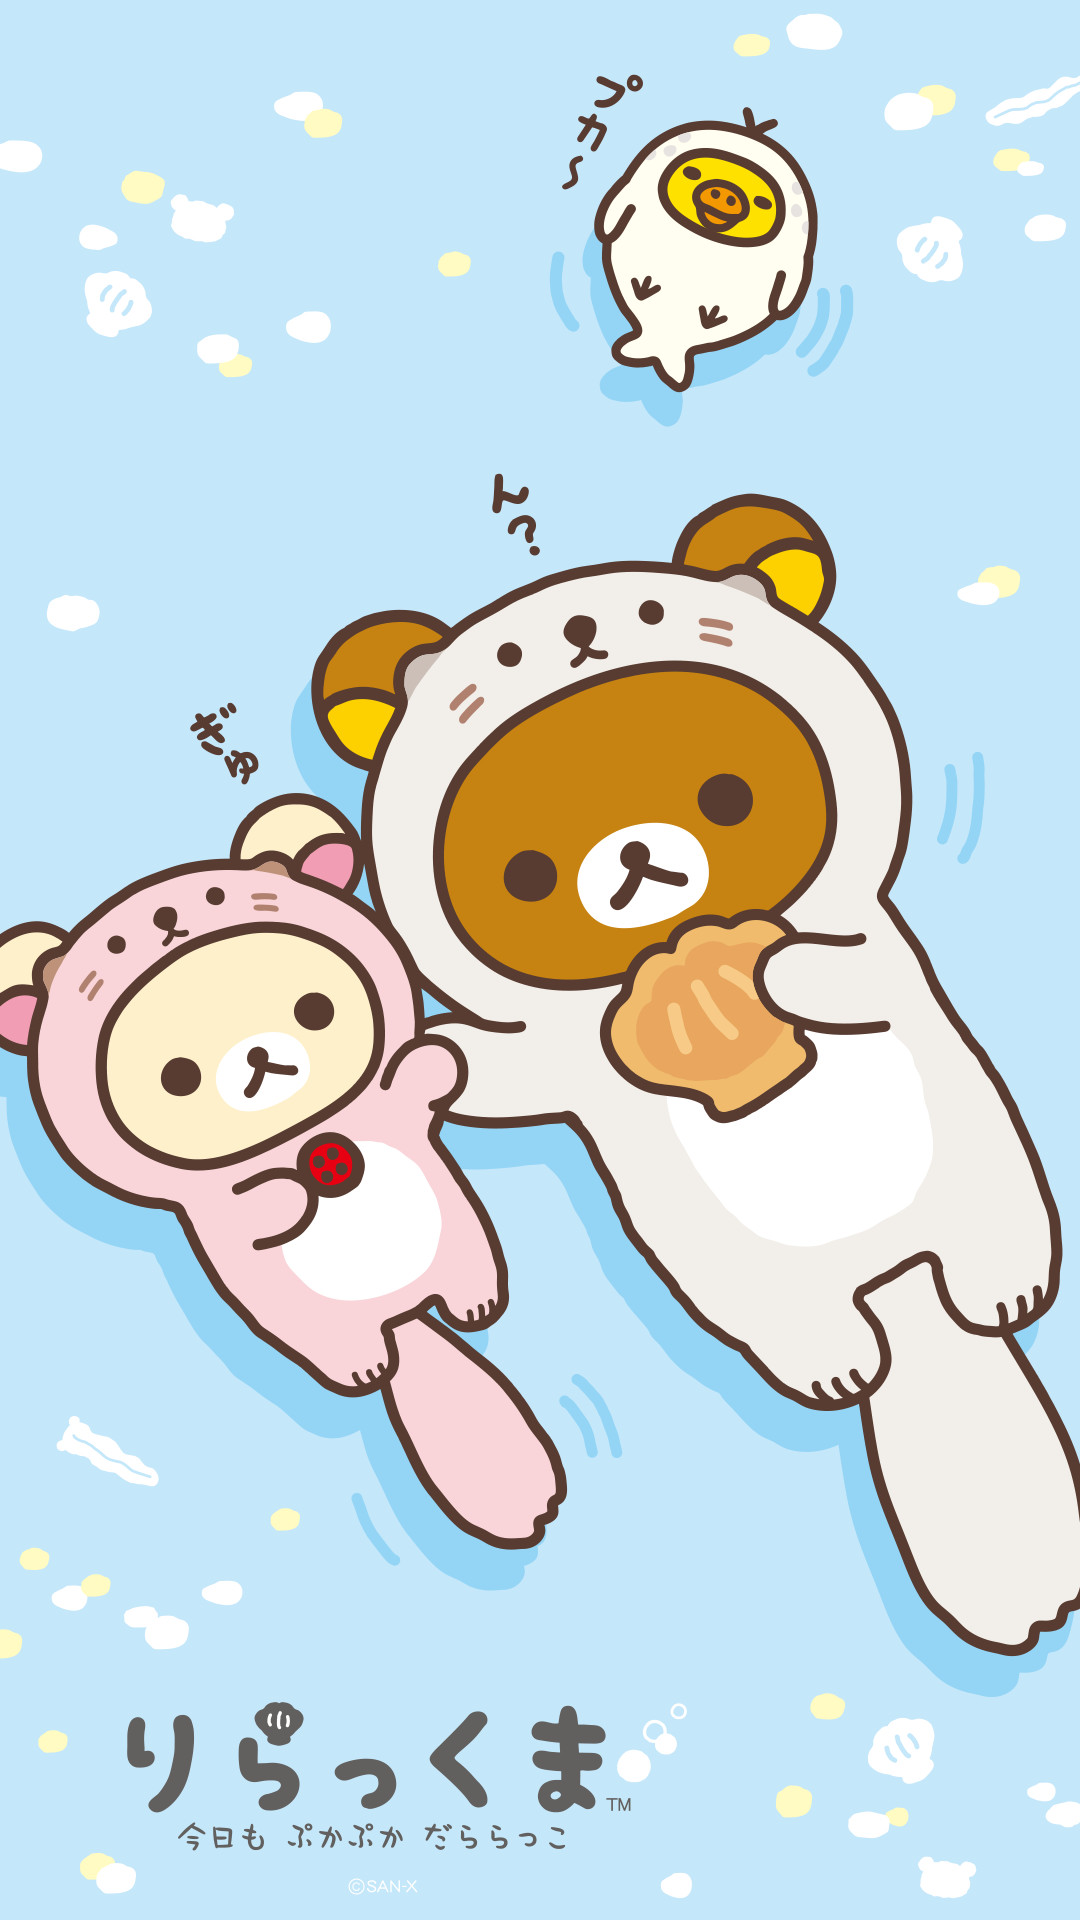 1080x1920 sp_1080_1920_present.png (1080×1920) | All About Rilakkuma | Pinterest |  Rilakkuma, Kawaii and Wallpaper